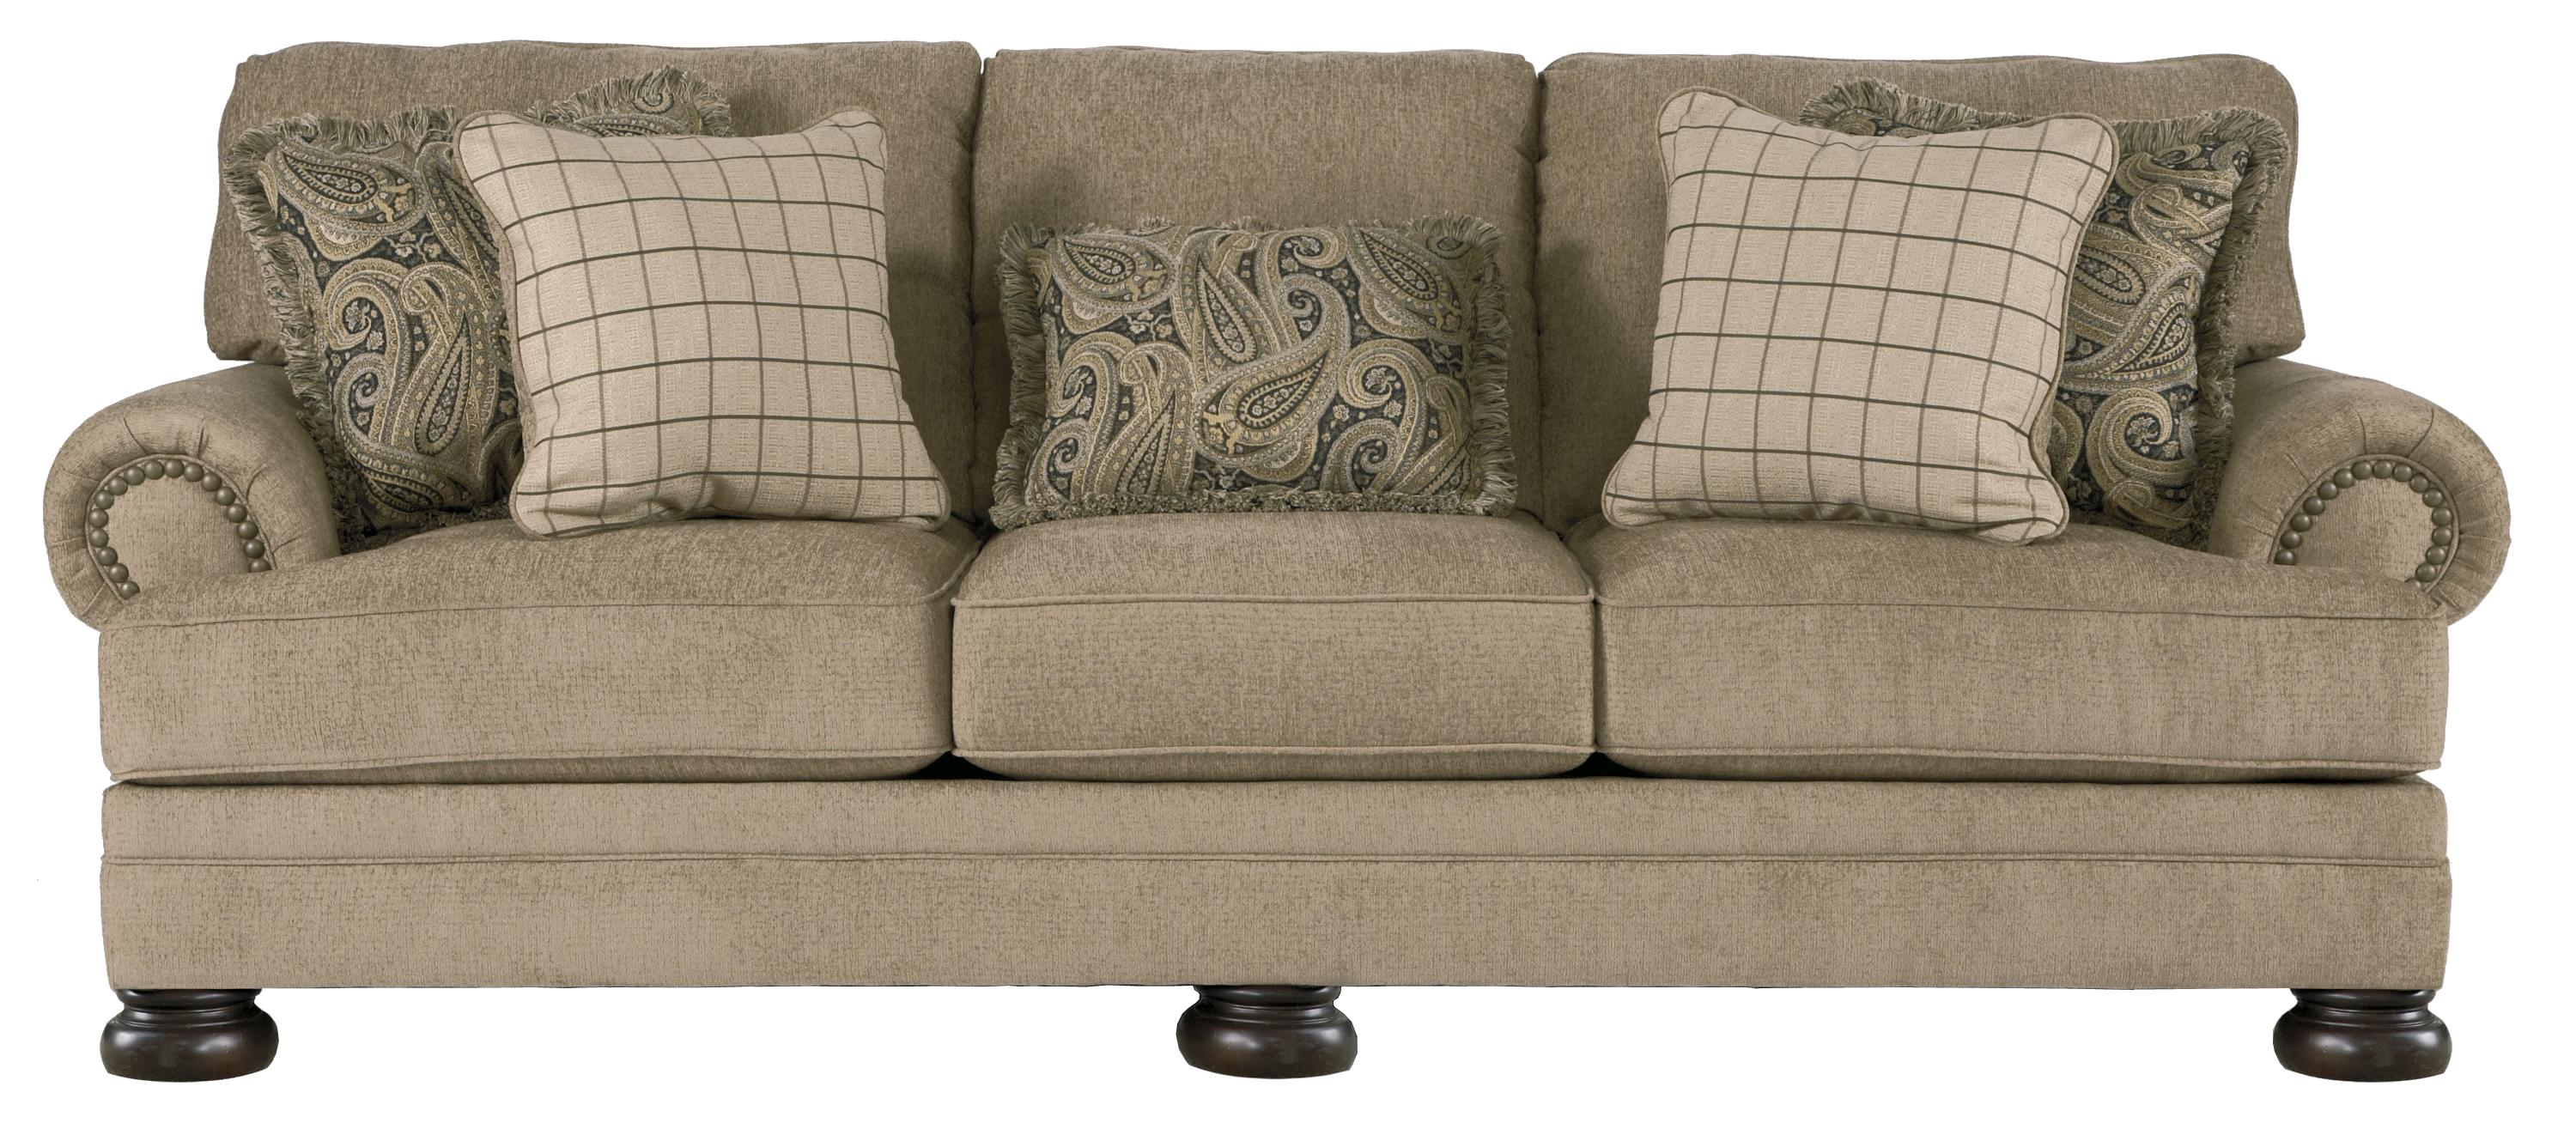 Signature Design By Ashley Keereel   Sand Sofa   Item Number: 3820038